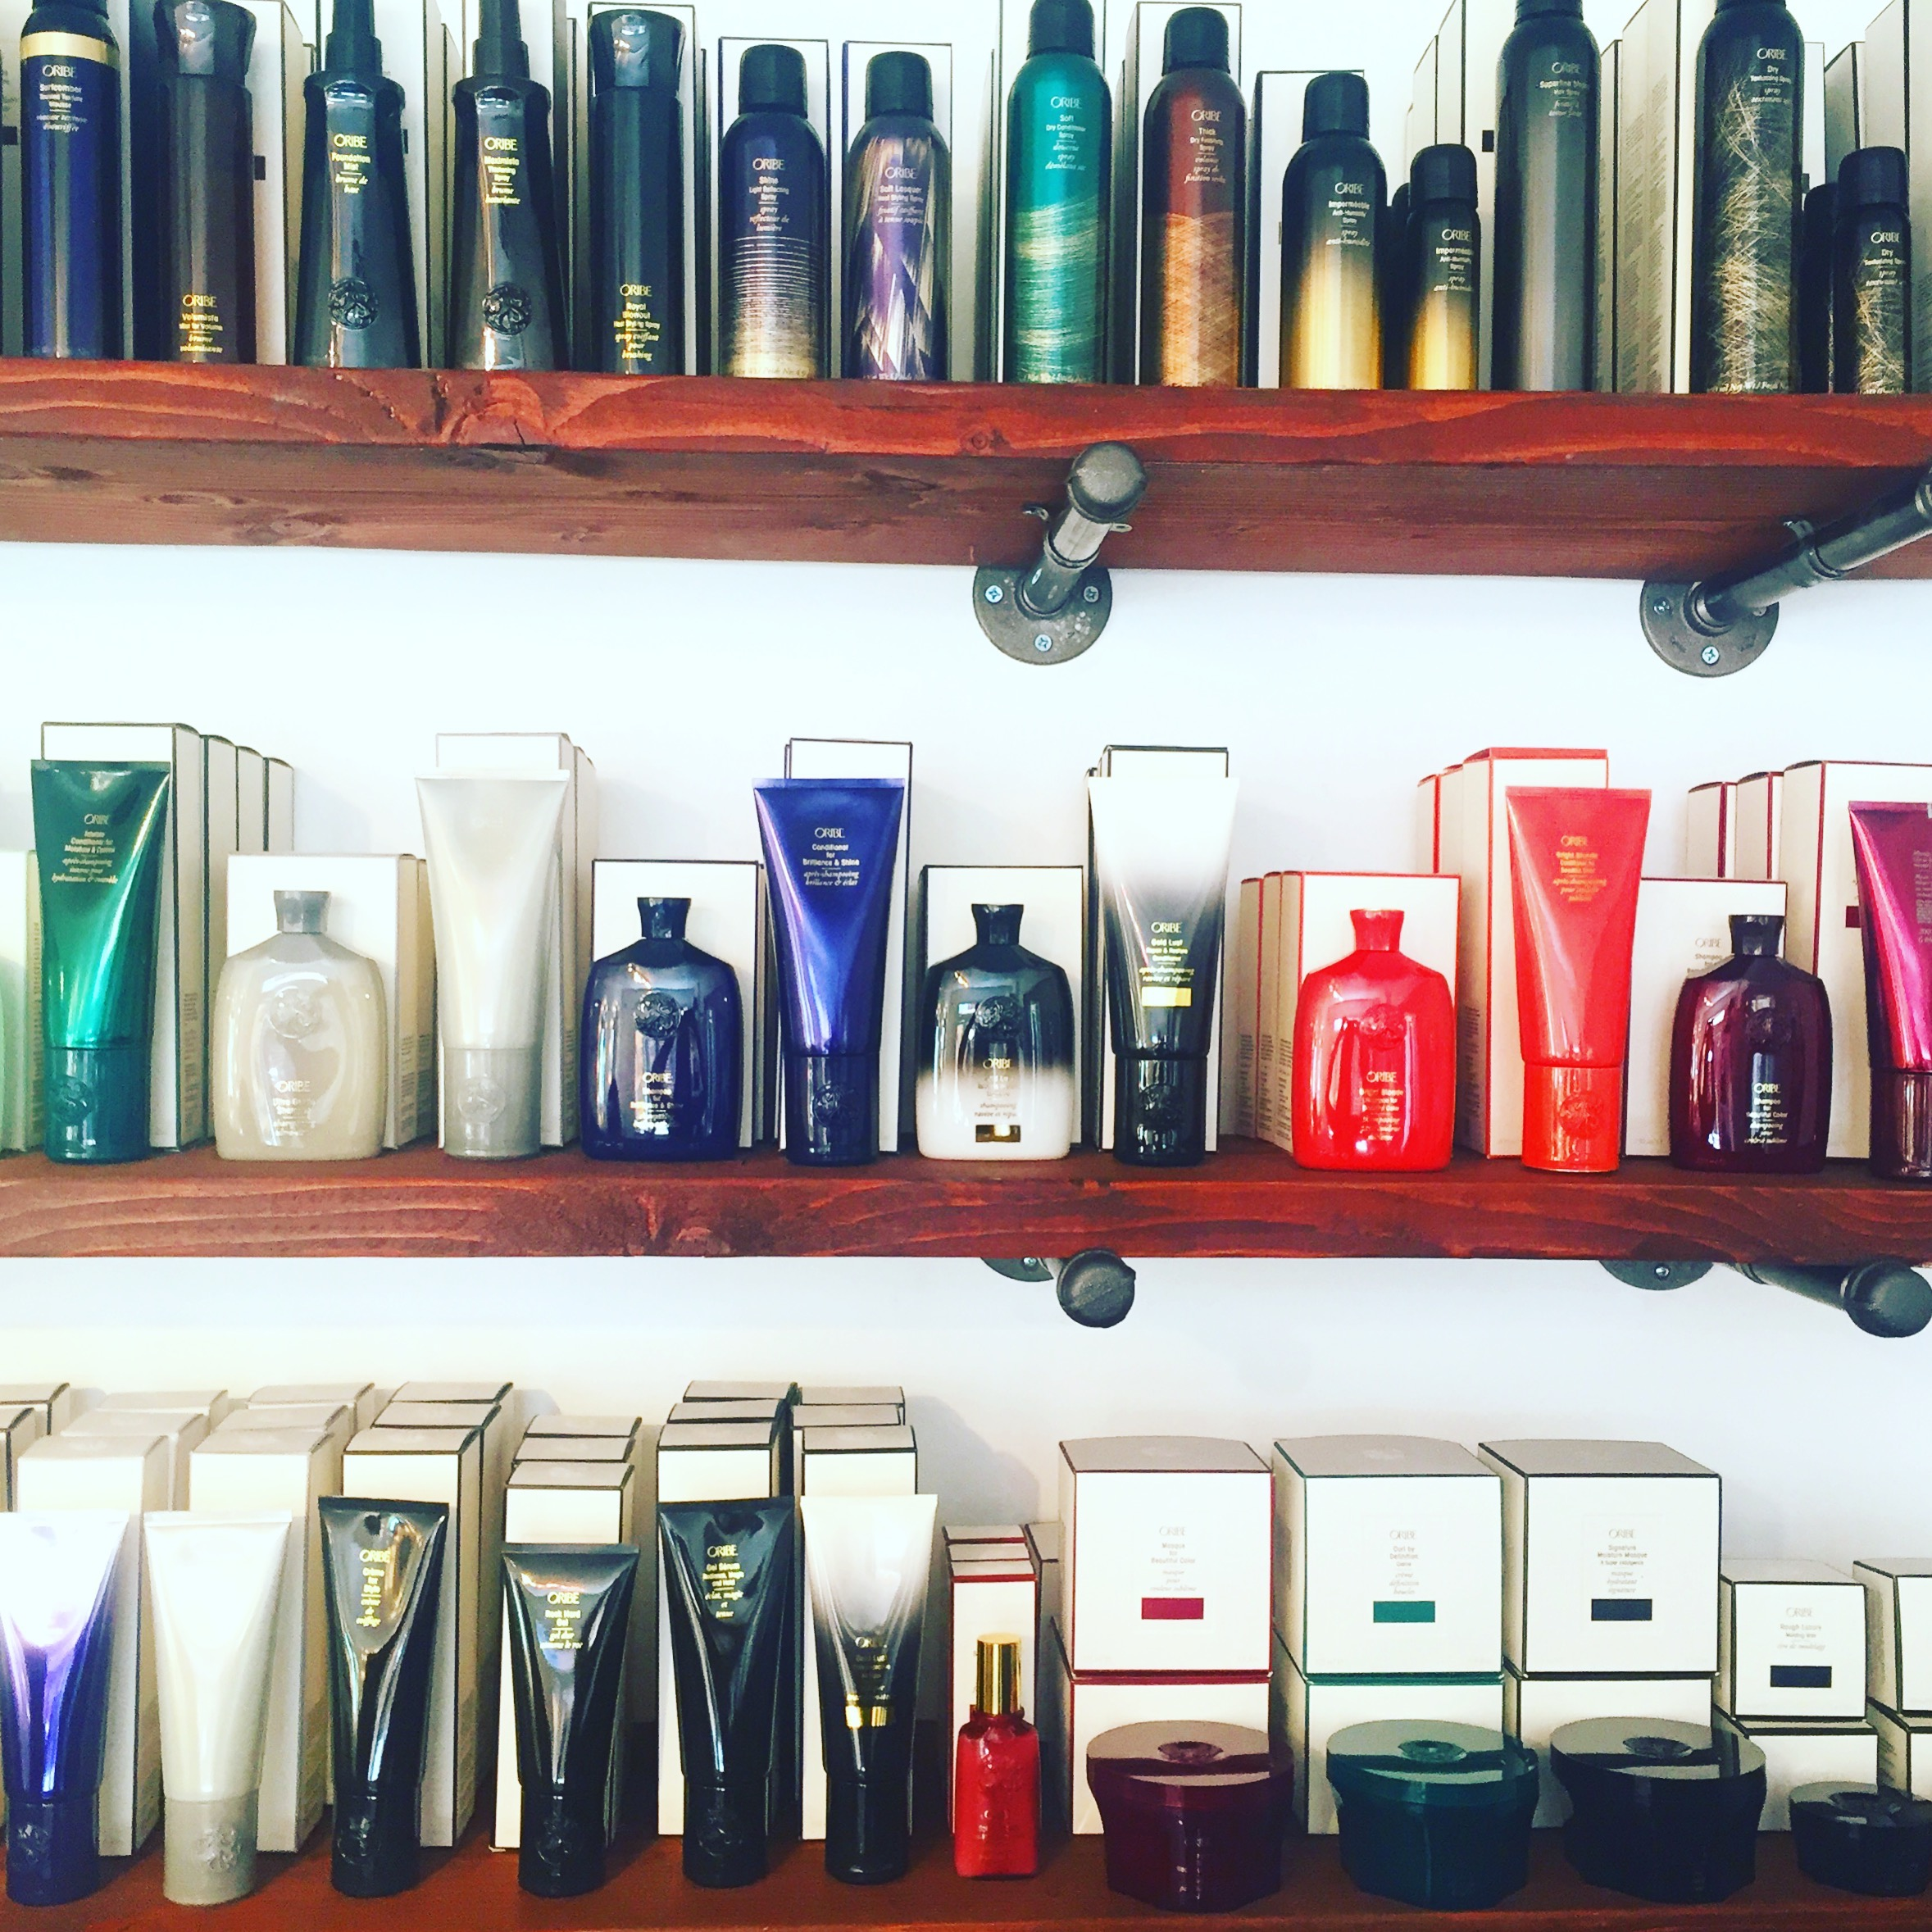 I desperately wish this was my personal collection of Oribe products but alas, it's not. To shop Oribe,  click here .